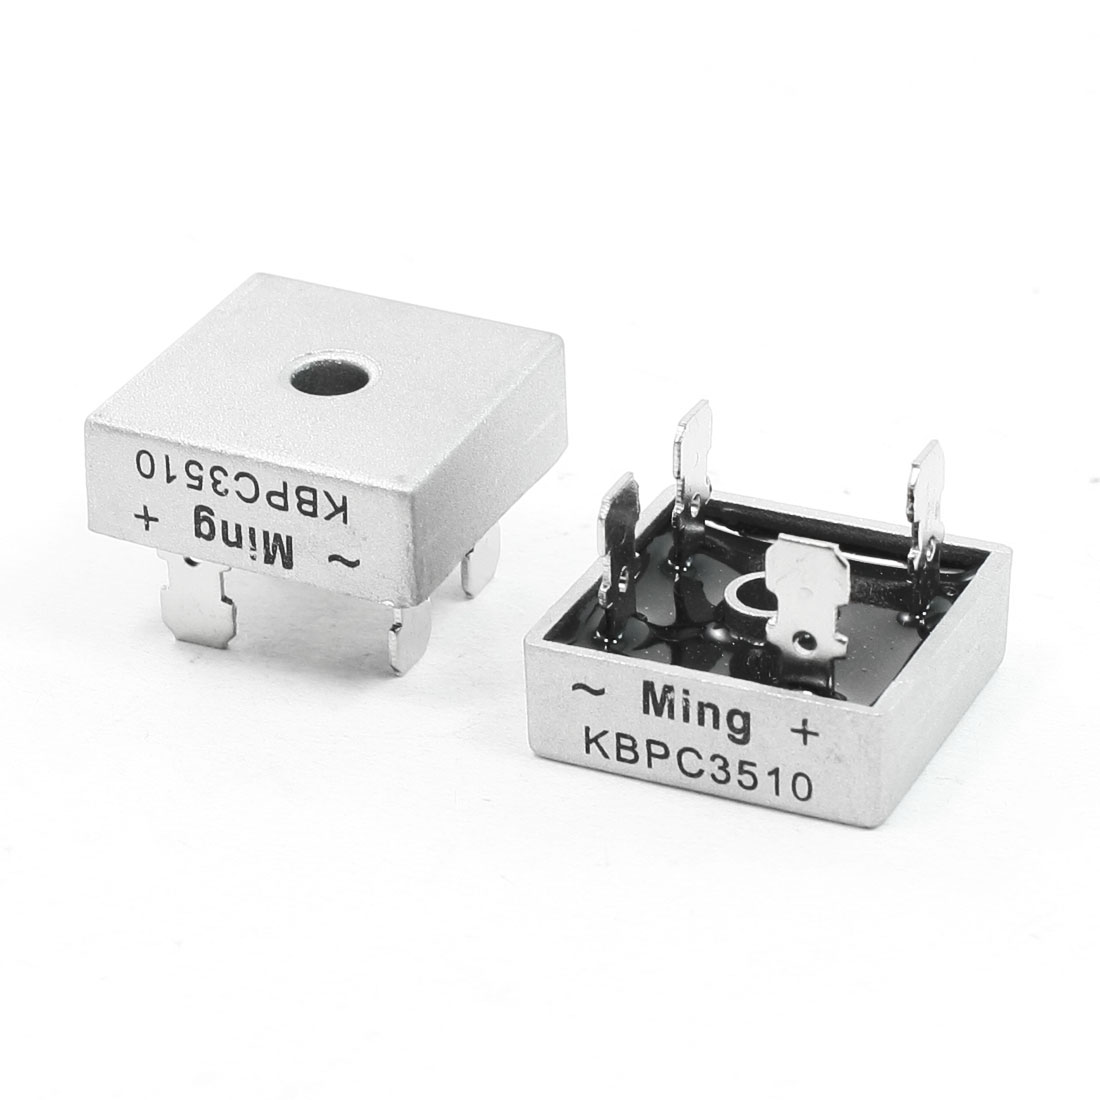 2 Pcs Silver Tone Ceramic Square 1000V 35A Bridge Rectifier